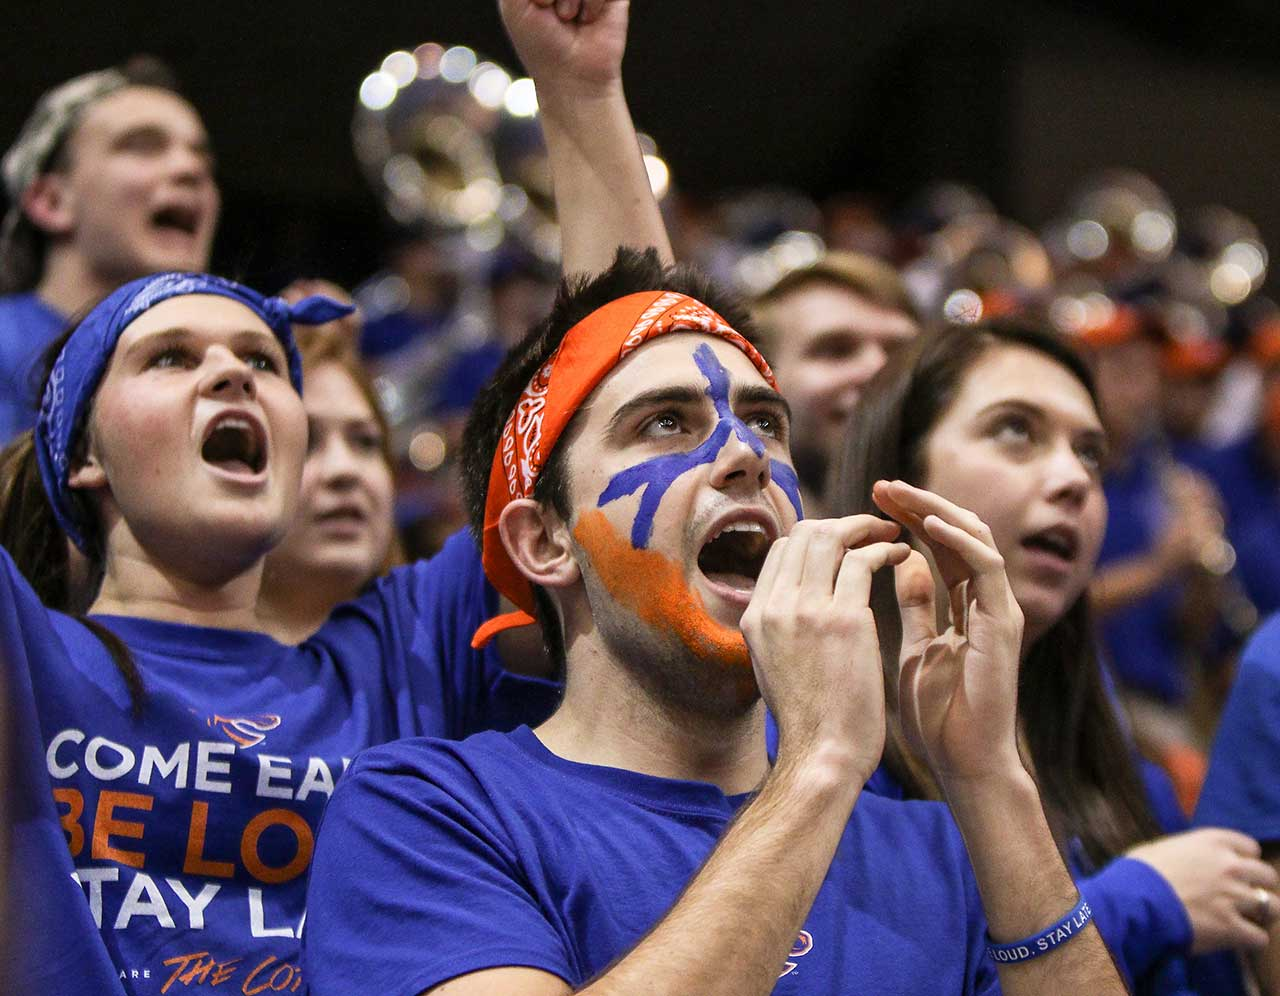 Boise State Broncos fans cheer during their team's 56-53 loss to the San Diego State Aztecs.